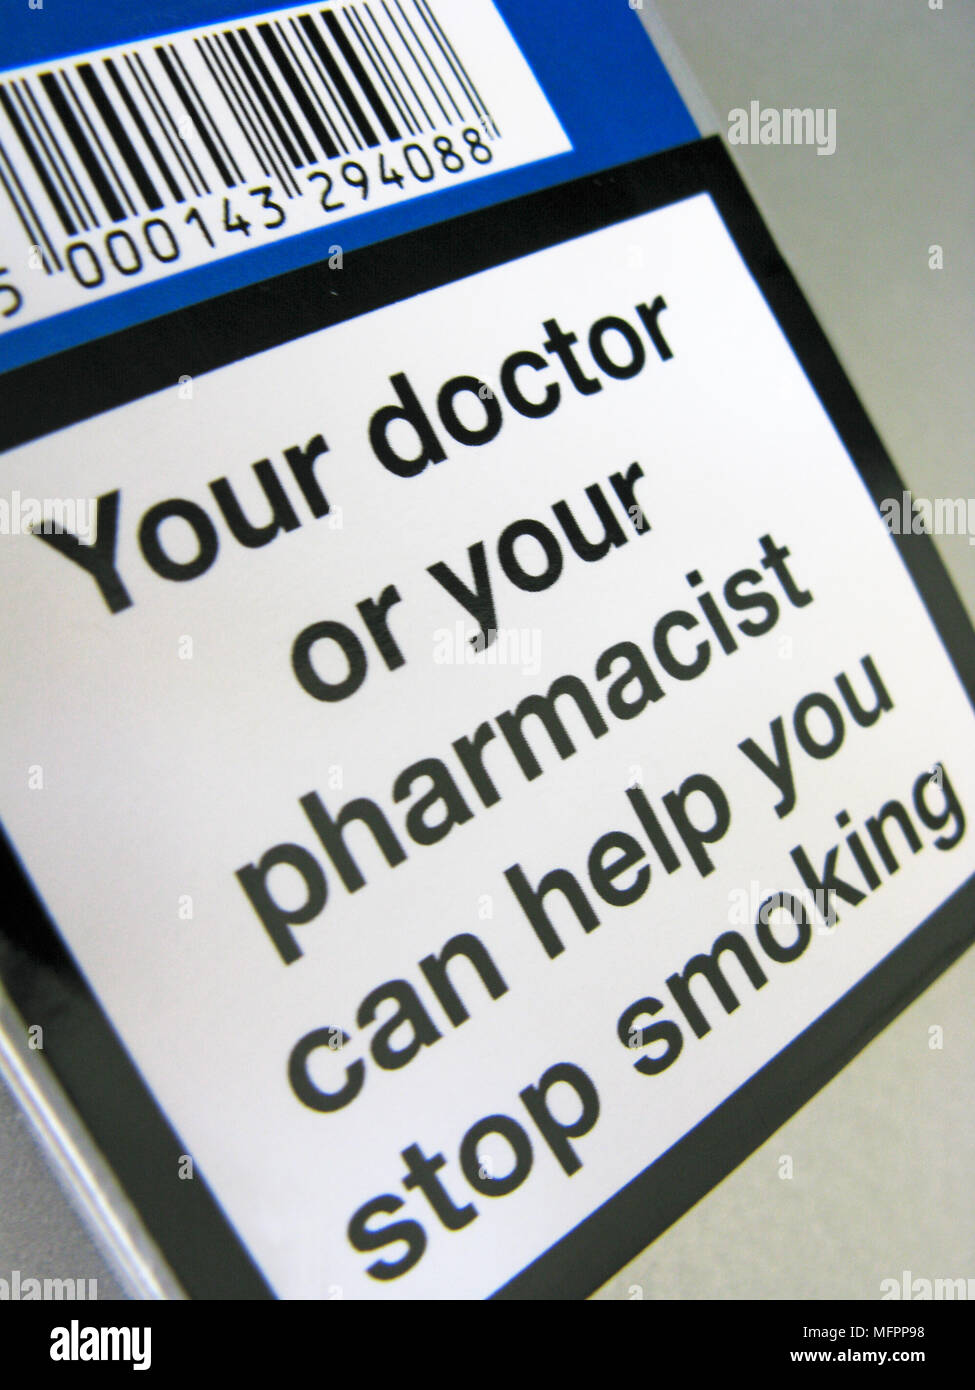 A cigarette packet with a warning on, indicating a doctor or pharmacist can help you to quit smoking - Stock Image